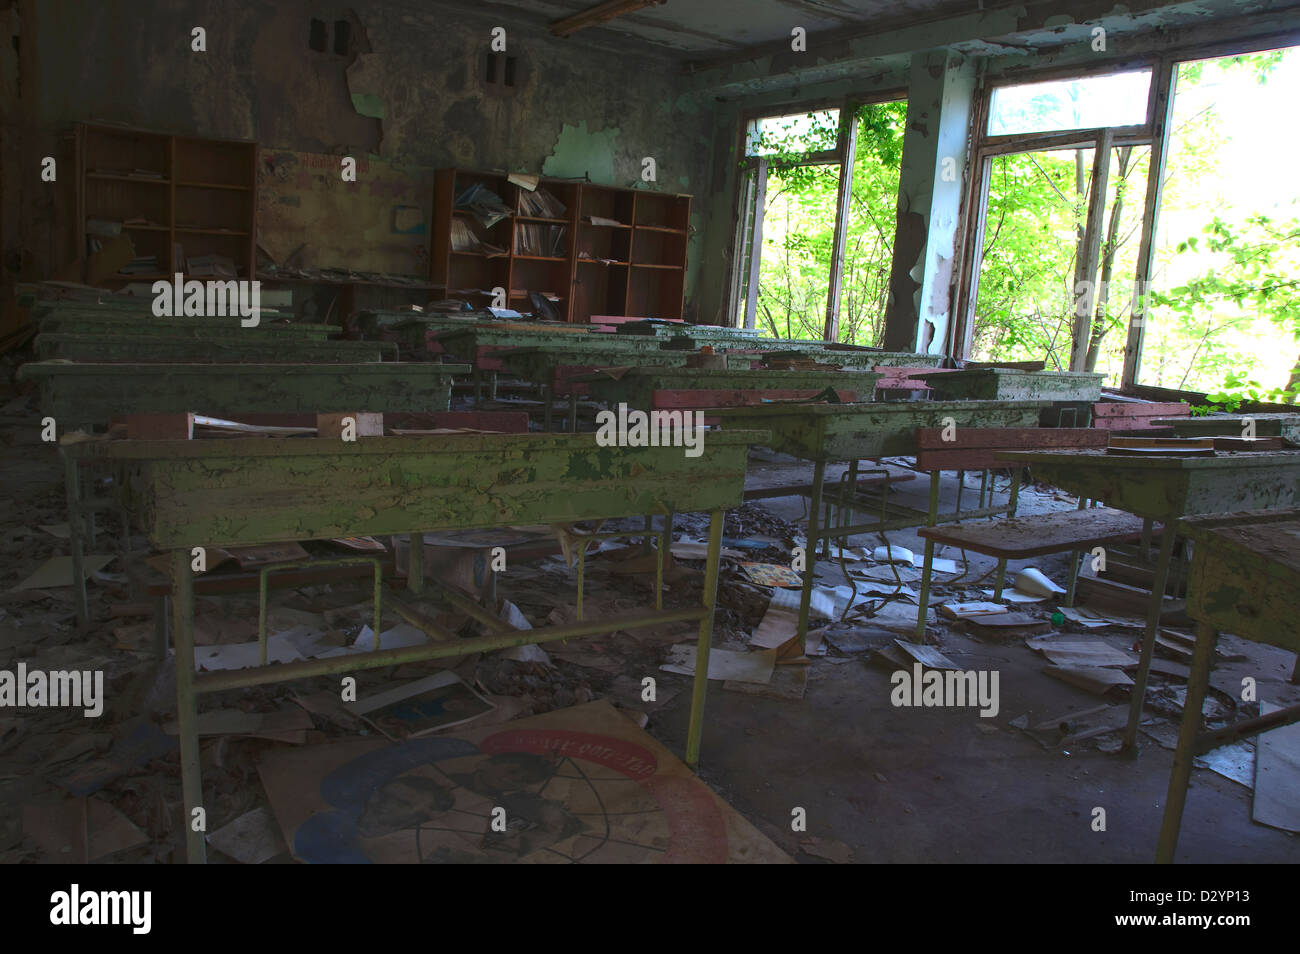 Chernobyl disaster results. Abandoned school. Stock Photo